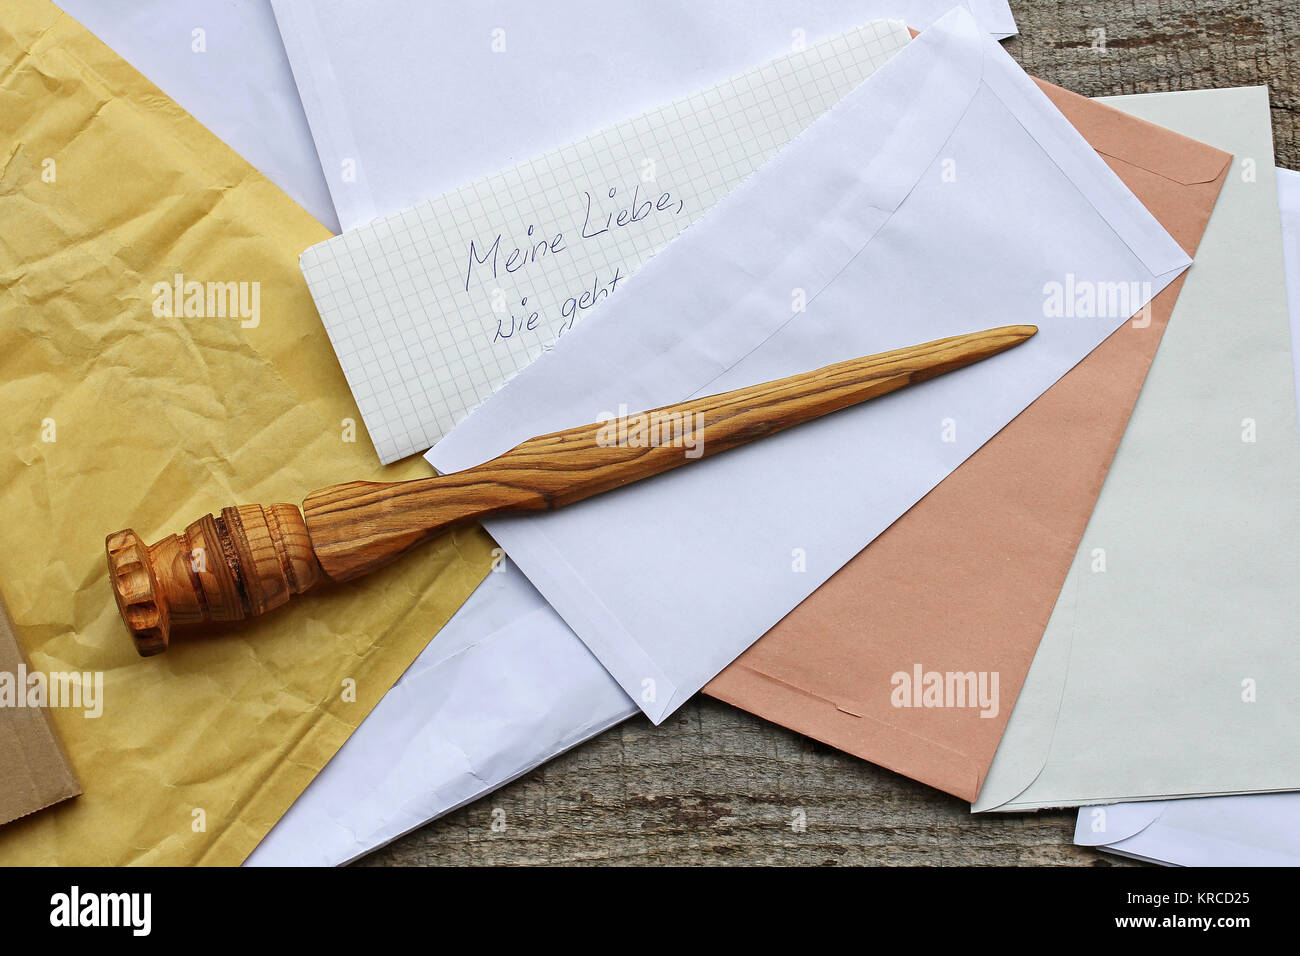 a letter opener in wood and open mail. letters received - Stock Image